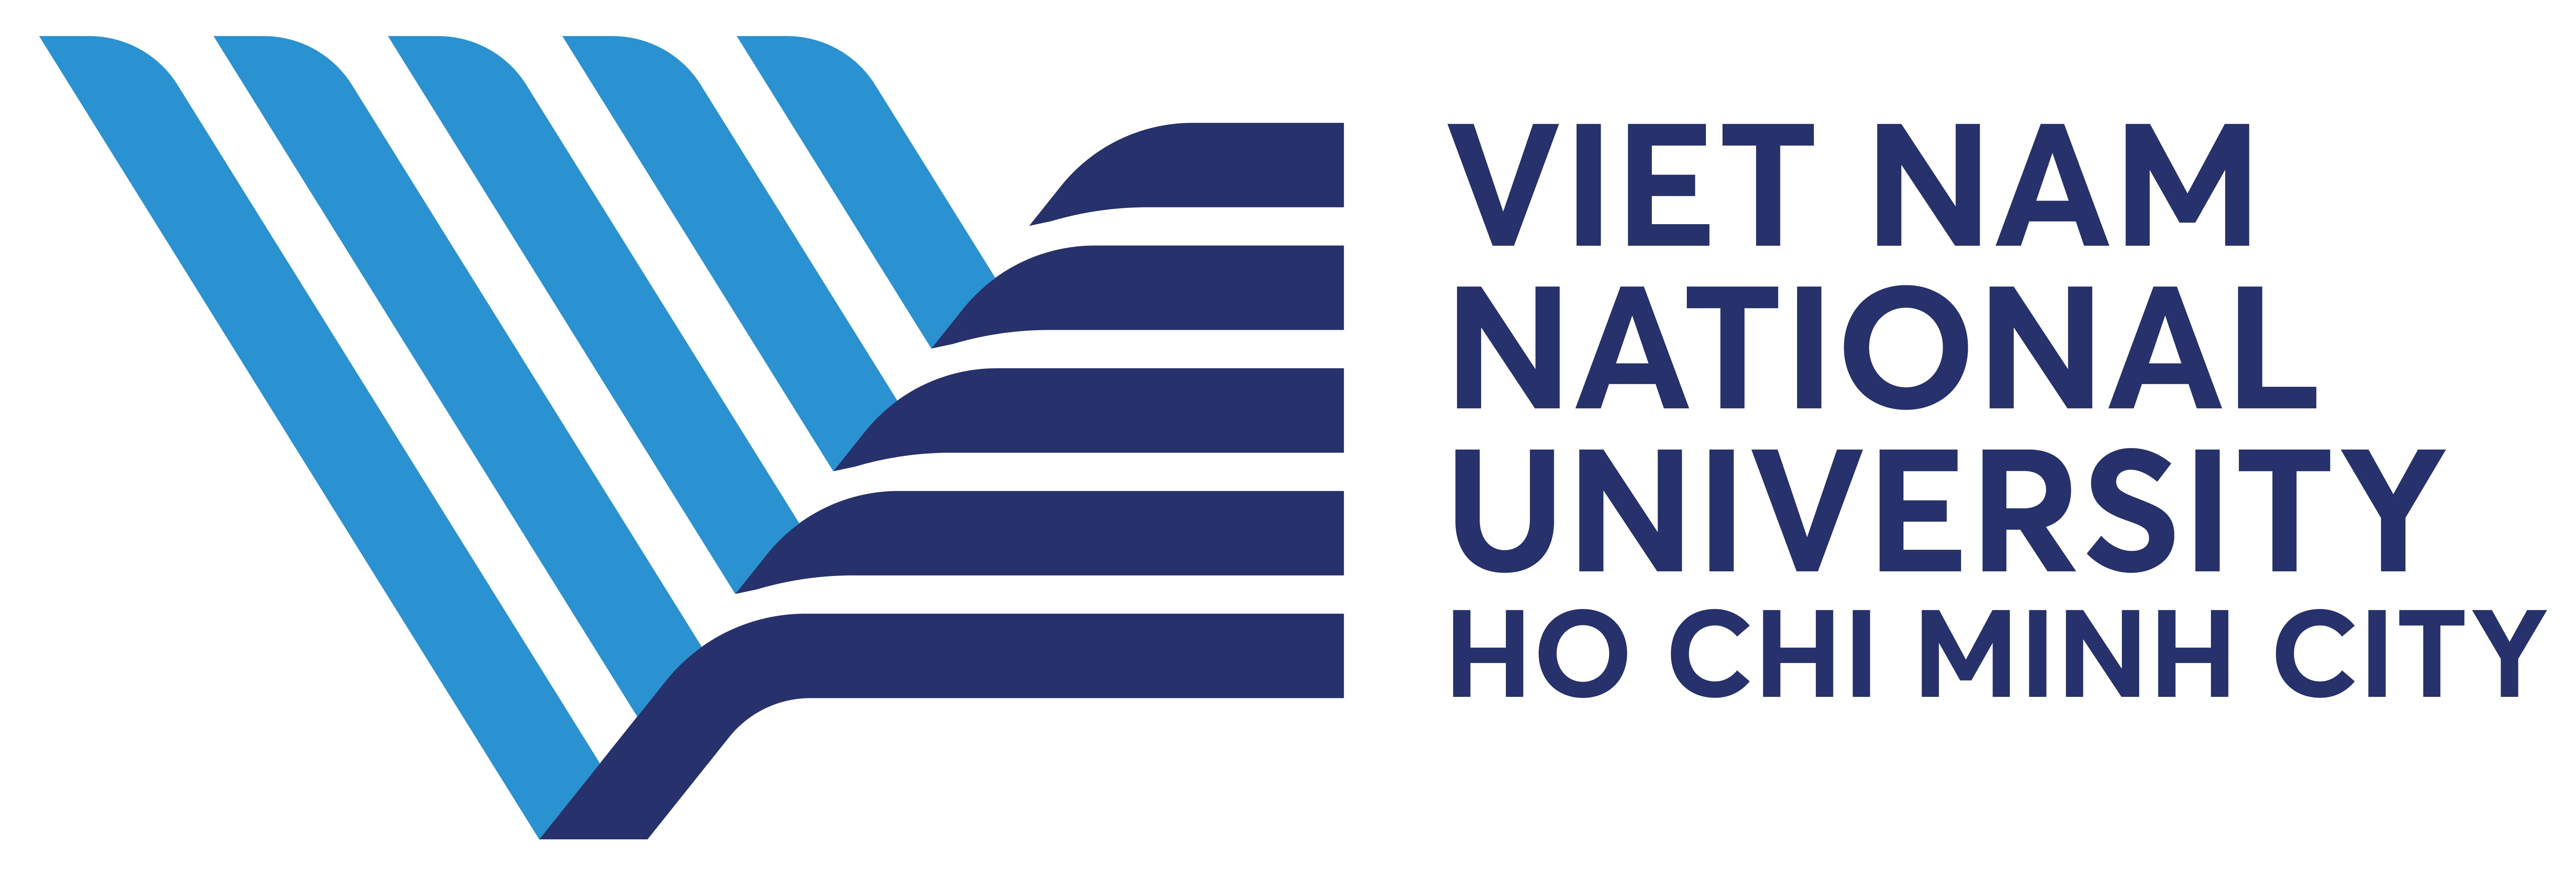 Viet Nam National University